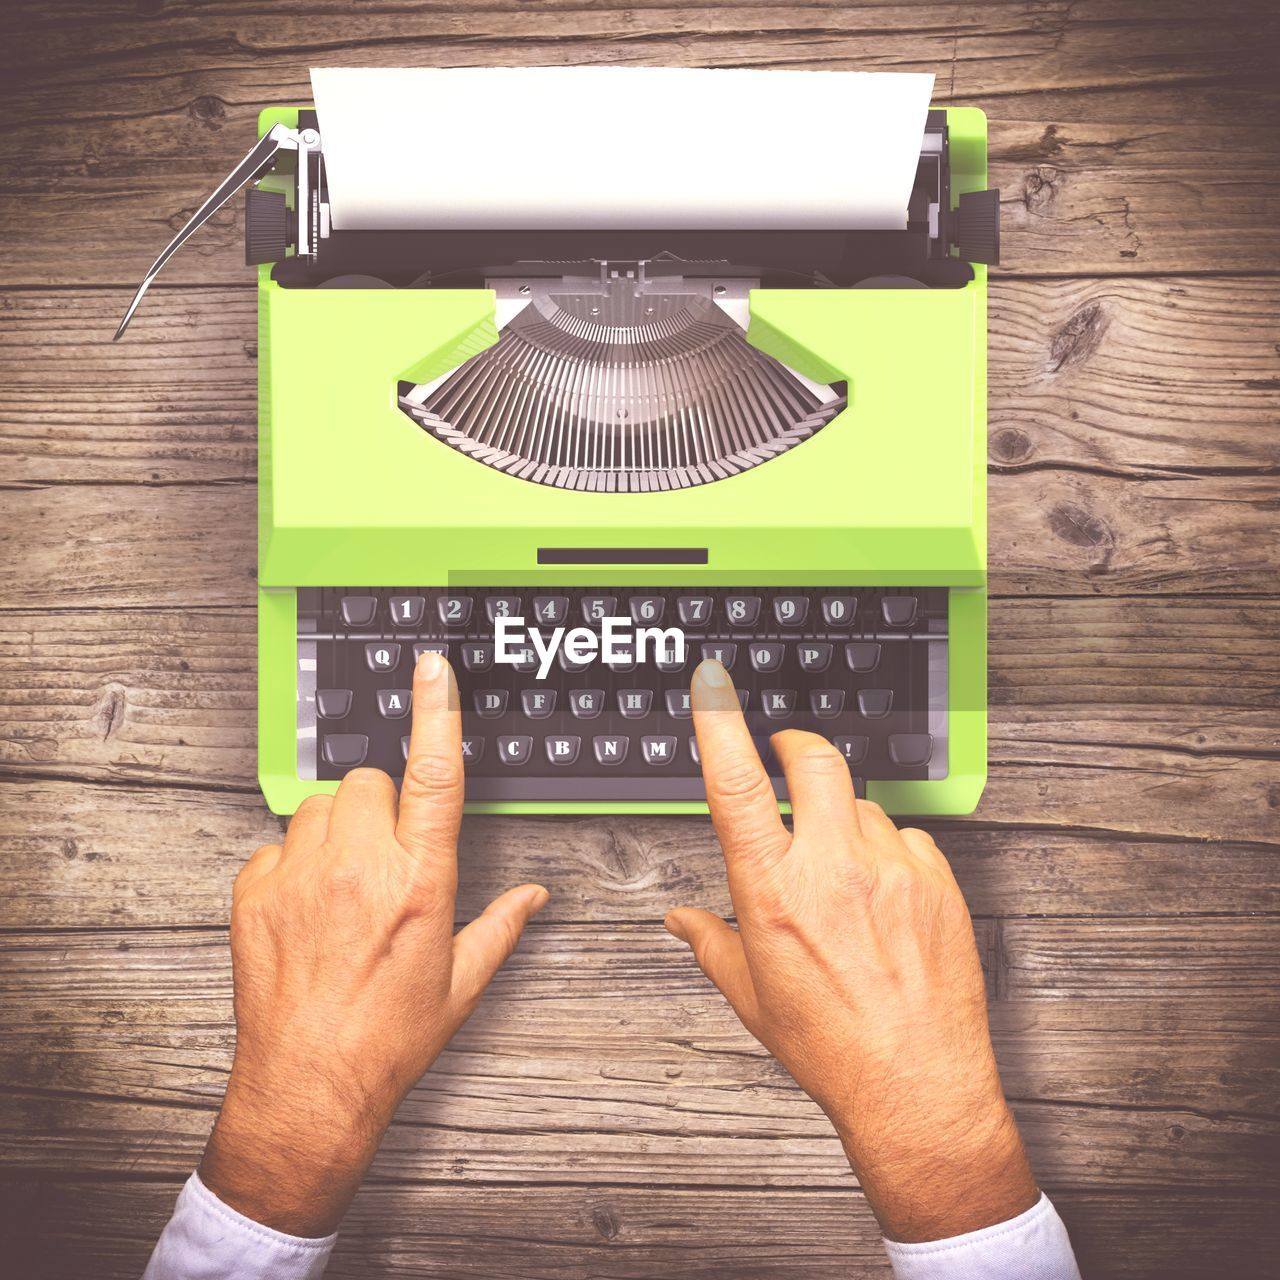 Cropped hands of man typing on typewriter at table